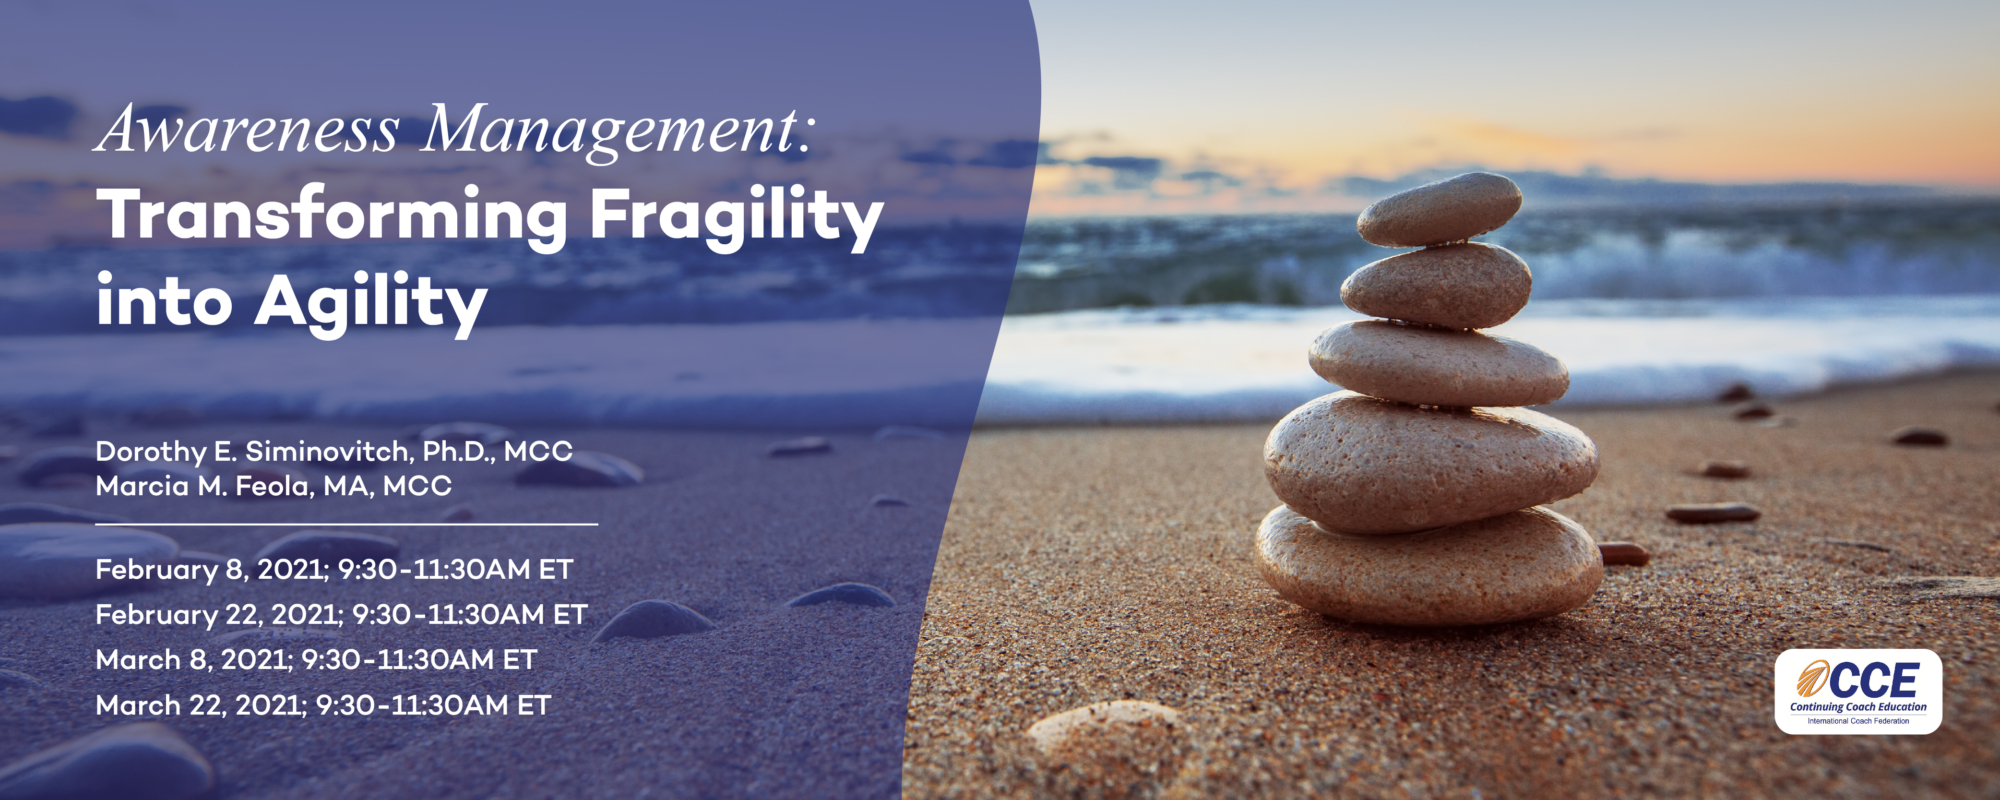 Awareness Management: Transforming Fragility into Agility